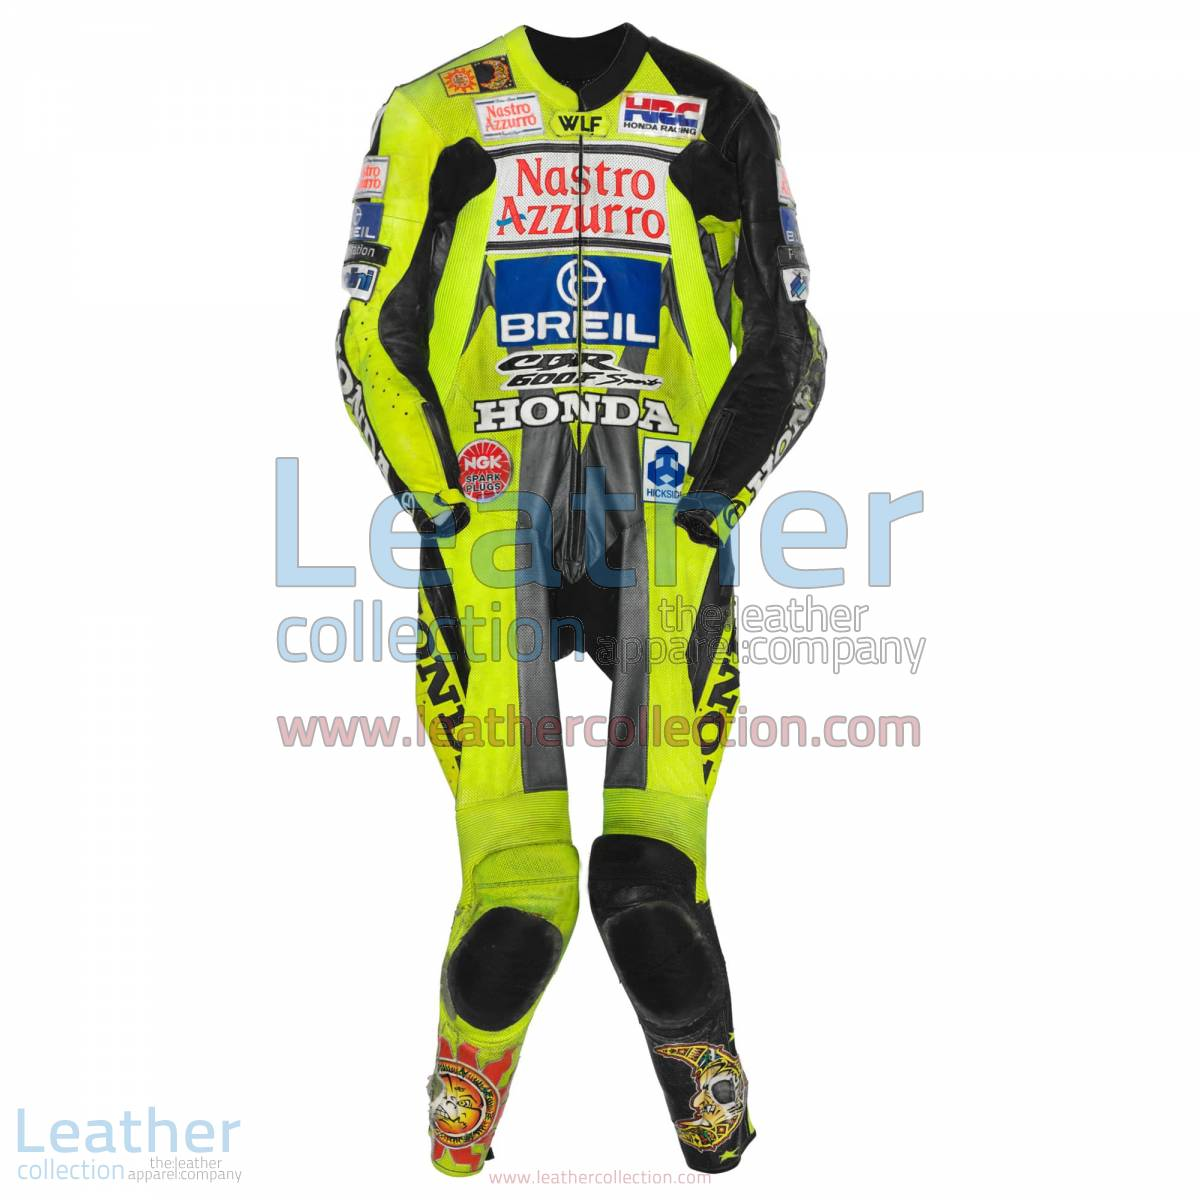 Valentino Rossi Honda CBR 600 GP 2000 Leather Suit | valentino rossi suit